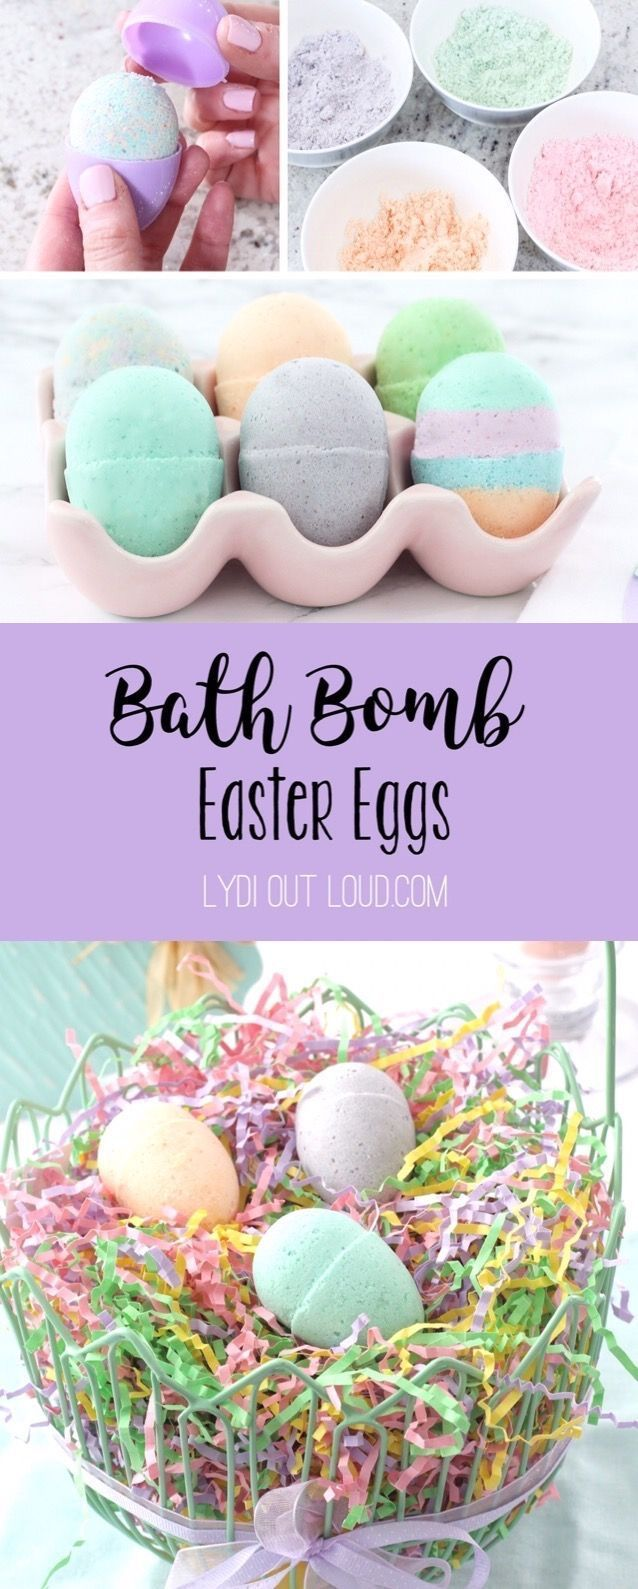 Diy bath bomb easter eggs diy baths bath bomb and easter baskets diy bath bomb easter eggs what a cute easter basket stuffer or holiday hostess gift negle Image collections